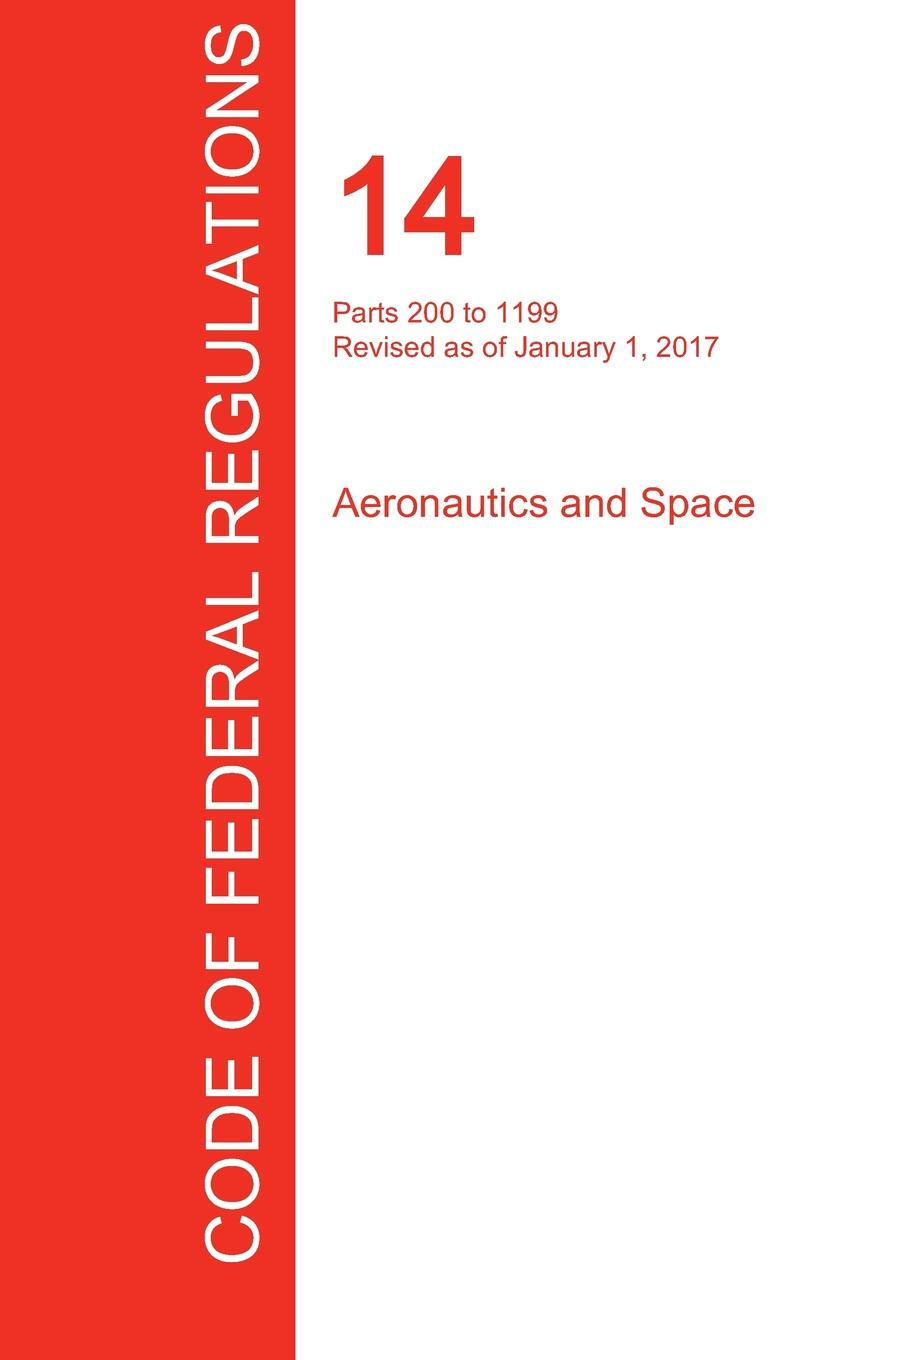 Фото - CFR 14, Parts 200 to 1199, Aeronautics and Space, January 01, 2017 (Volume 4 of 5) проводной и dect телефон foreign products vtech ds6671 3